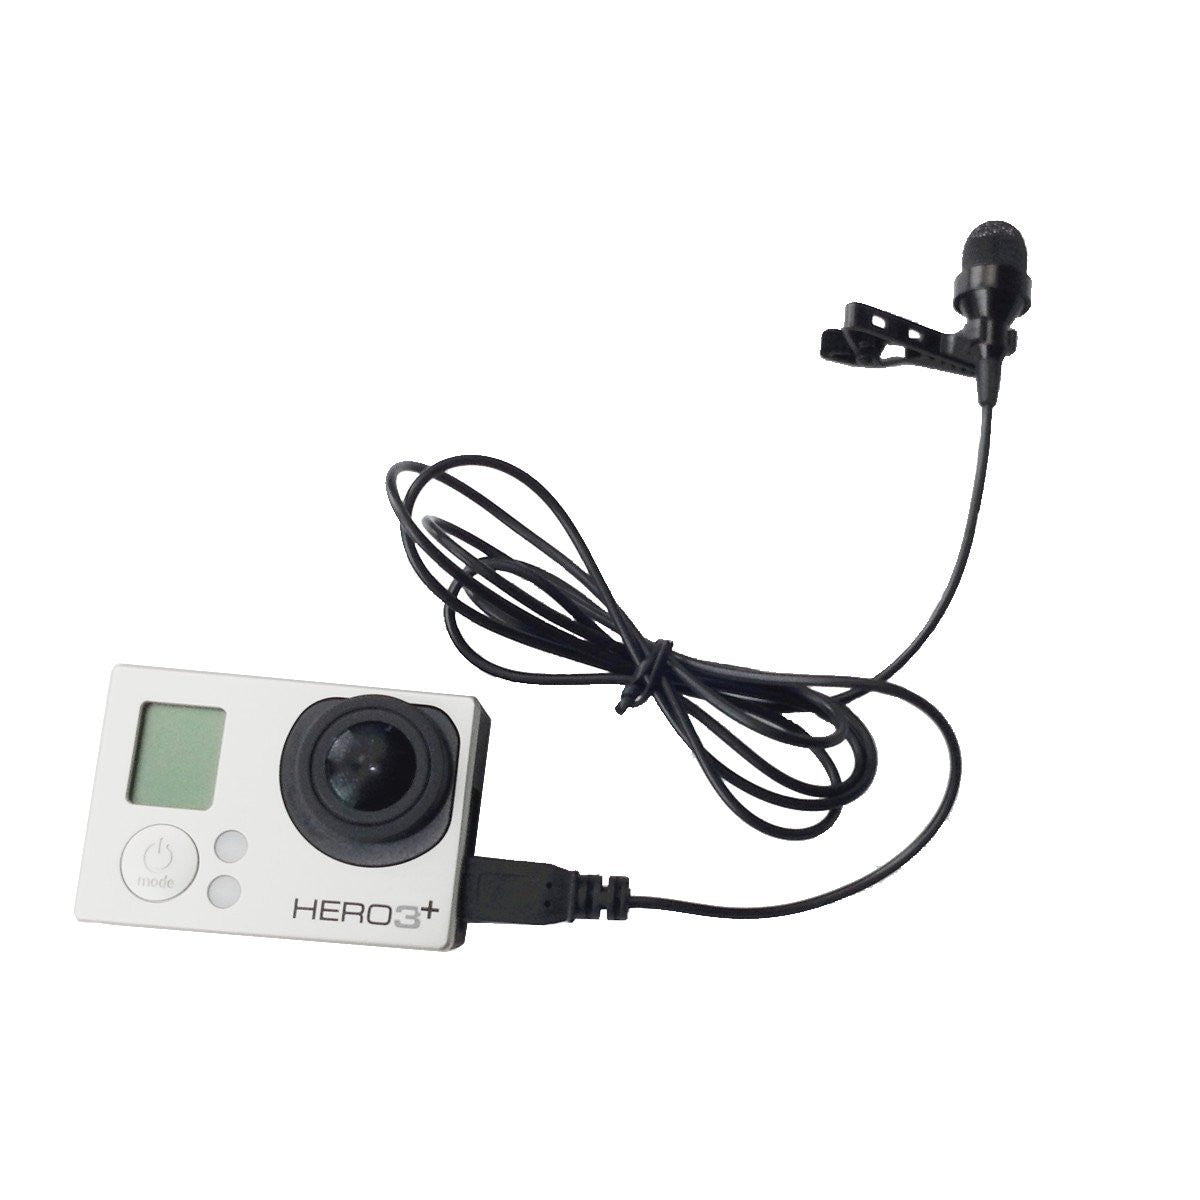 Telesin Professional Microphone for Gopro Hero 4 / 3+ / 3